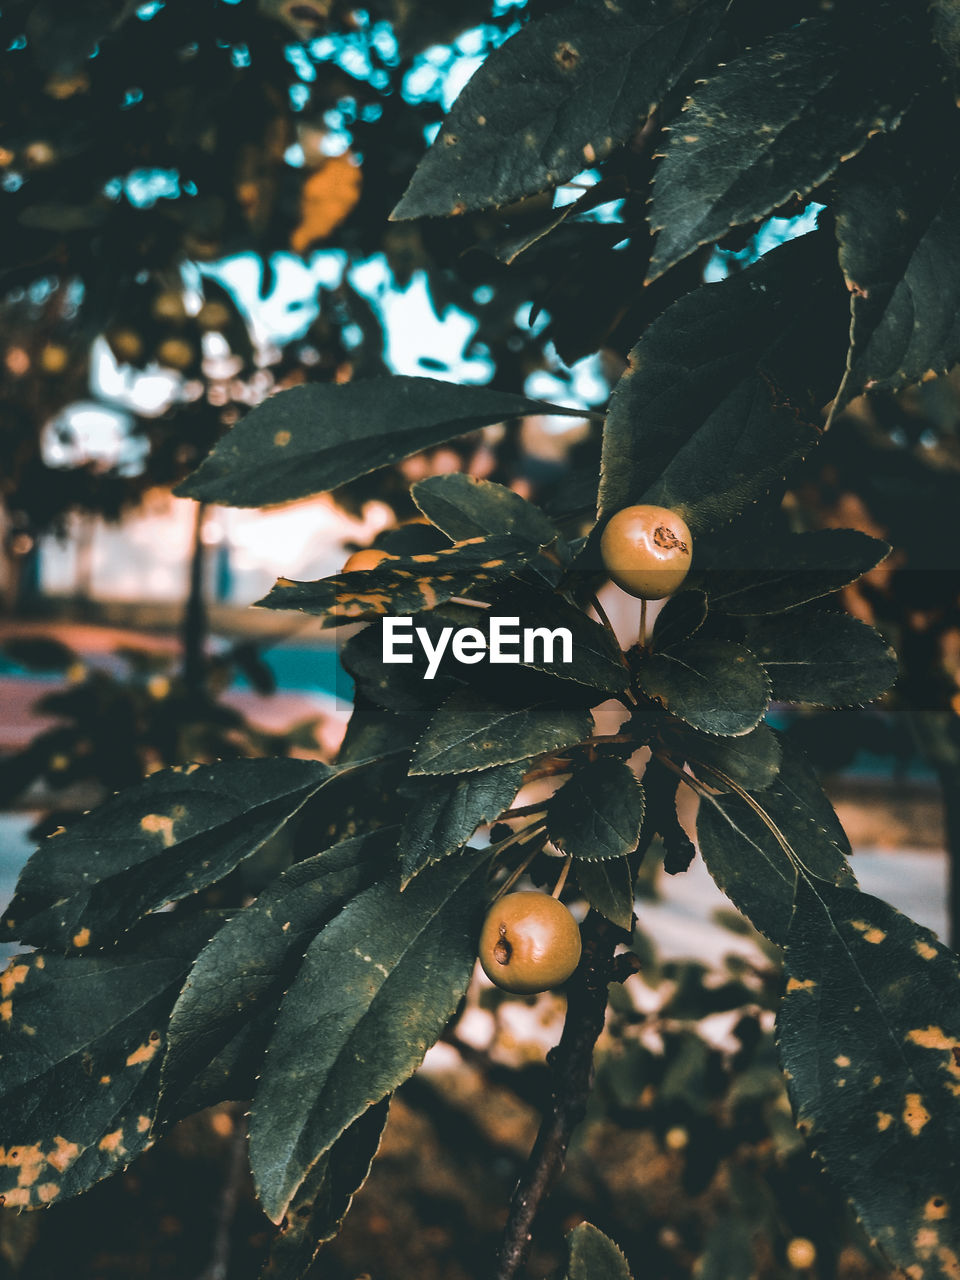 plant, tree, growth, focus on foreground, nature, close-up, leaf, day, plant part, beauty in nature, fruit, no people, branch, healthy eating, outdoors, food, food and drink, freshness, tranquility, green color